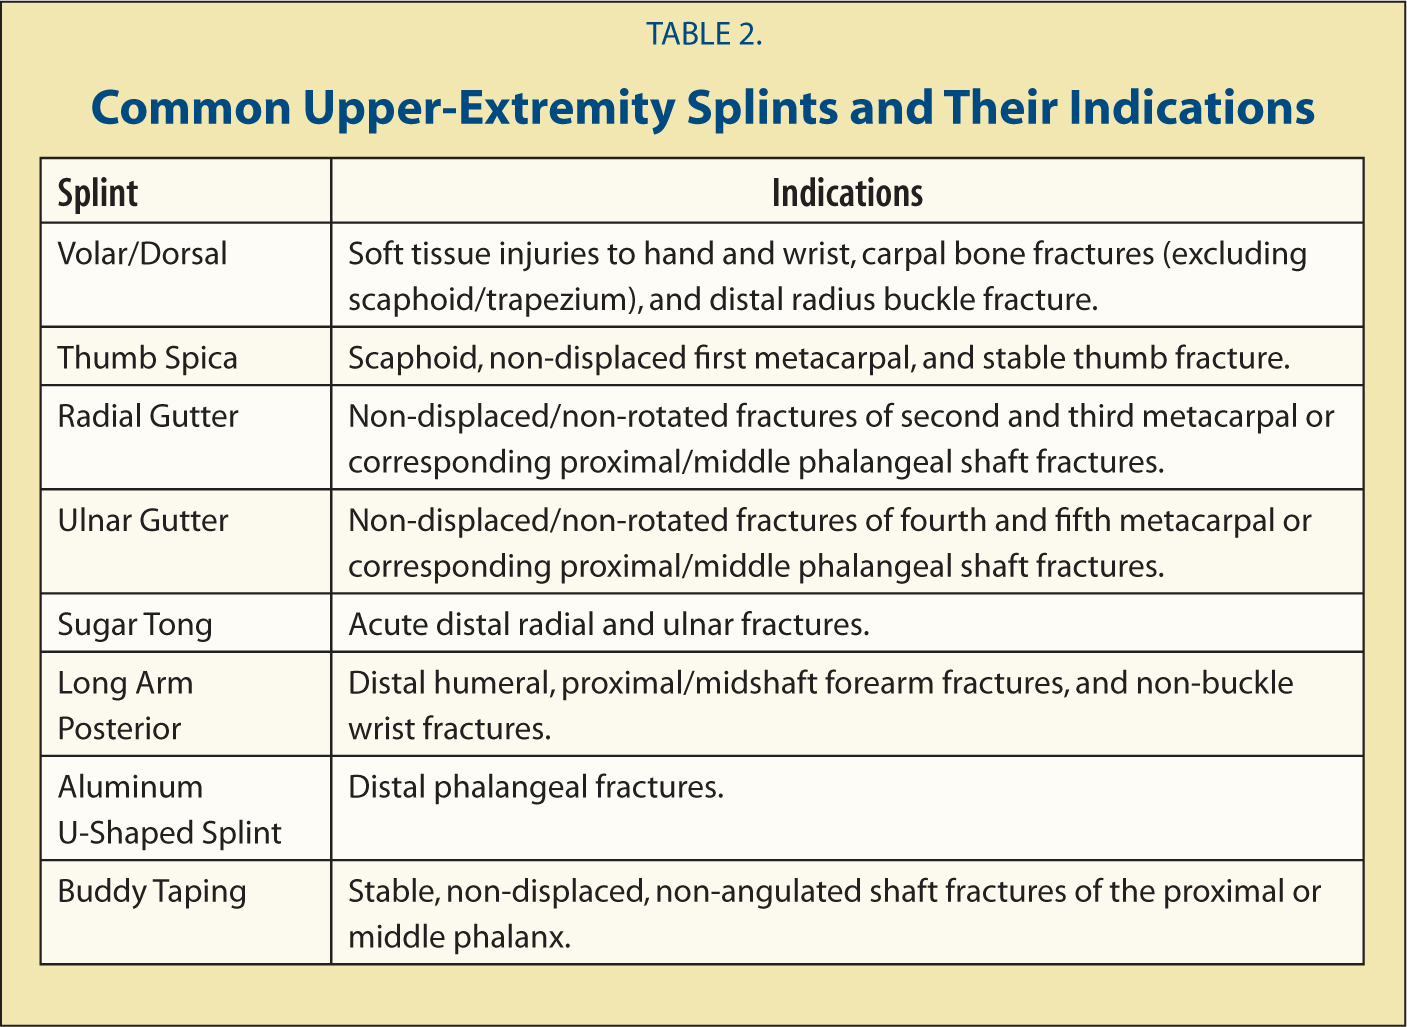 Common Upper-Extremity Splints and Their Indications